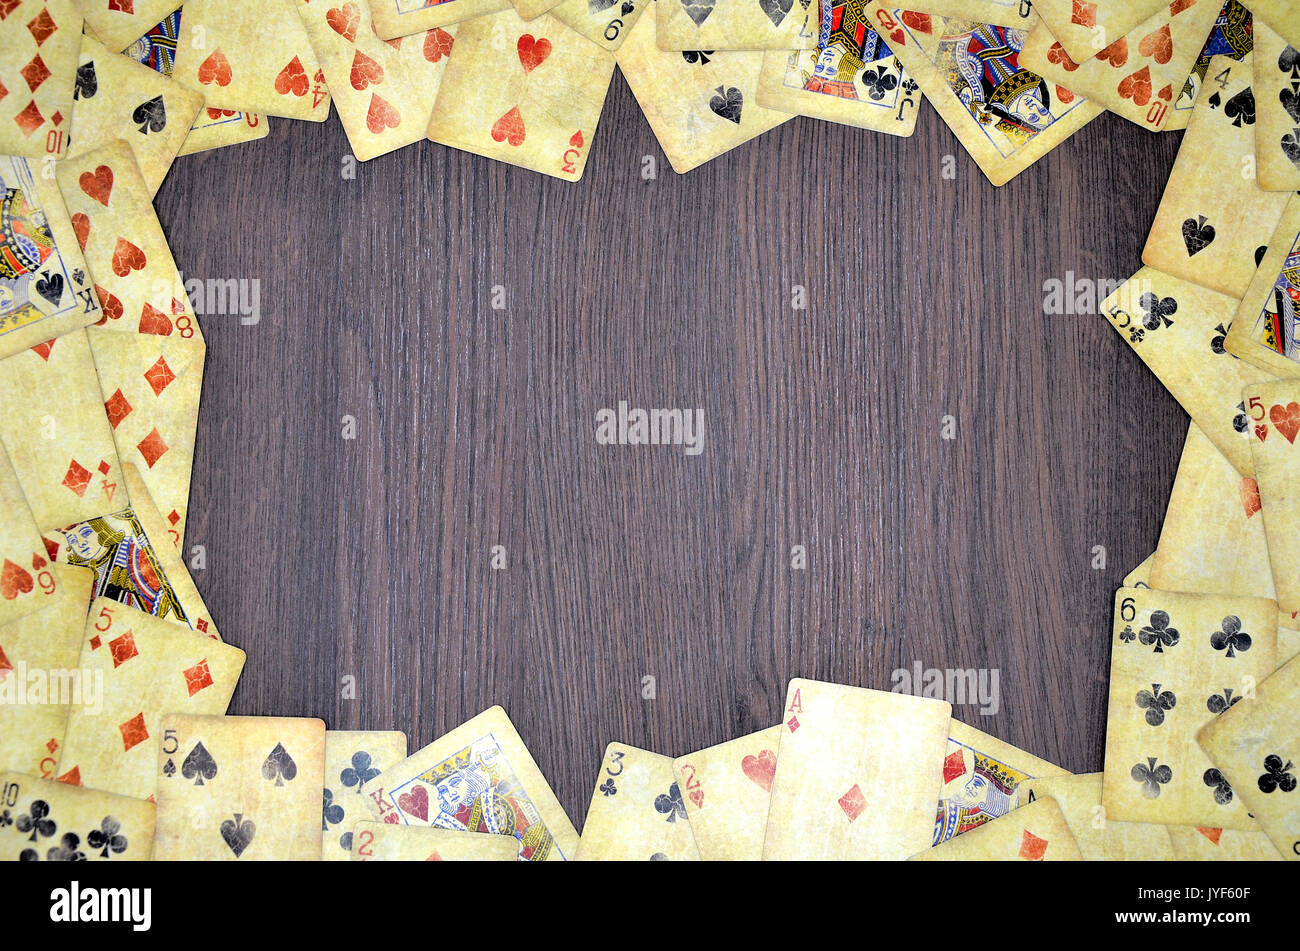 Poker card background on wooden desk - Stock Image